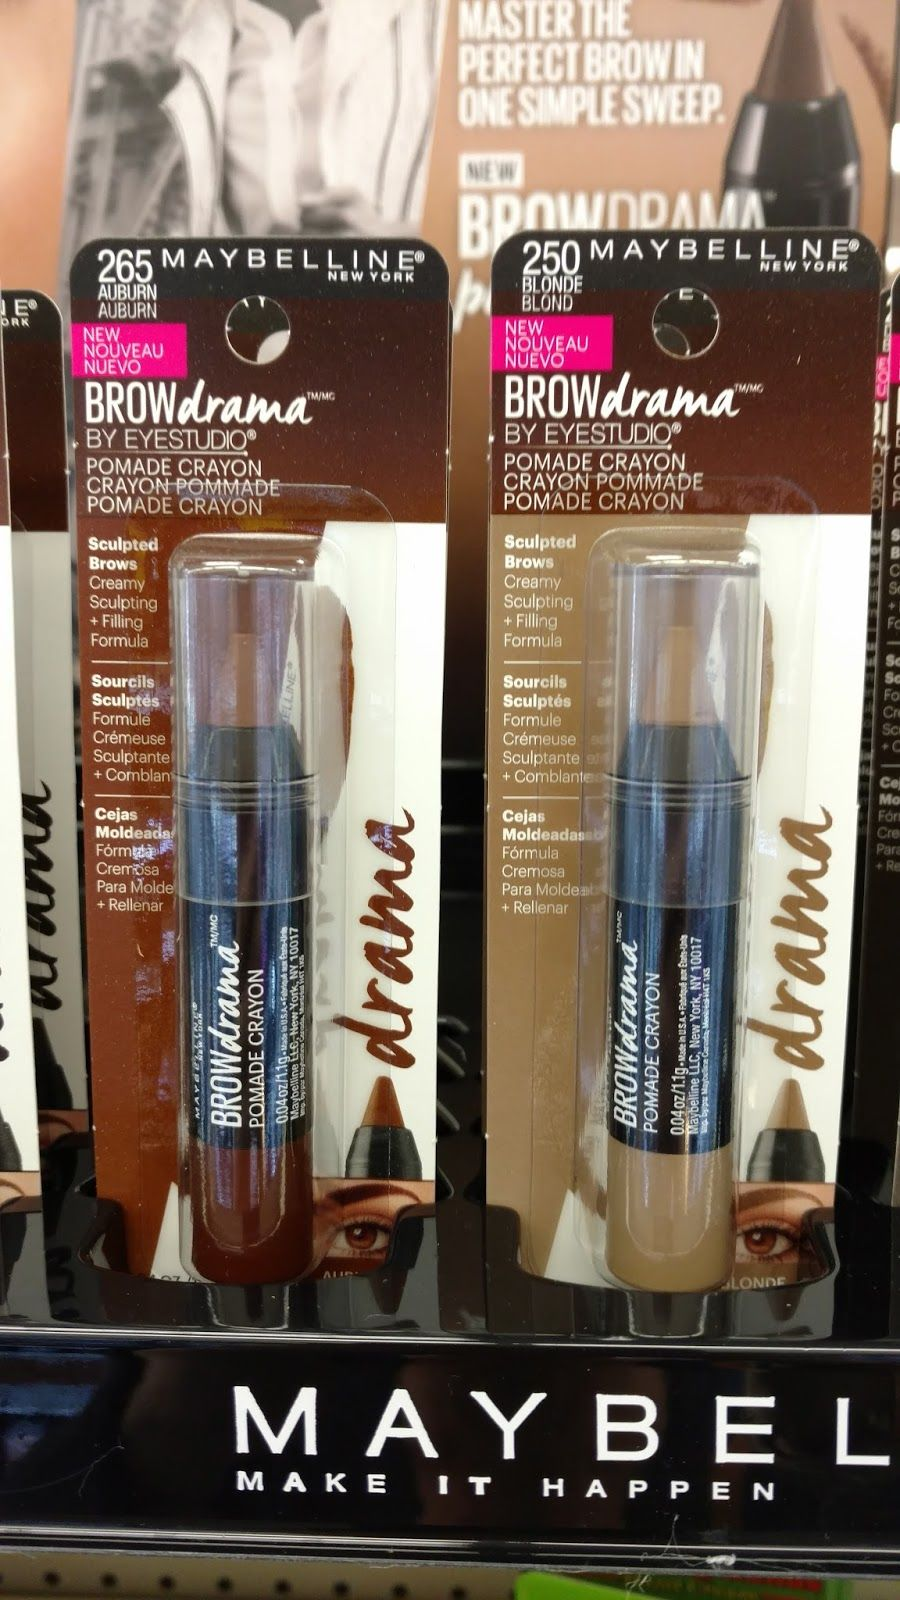 d903c02d4d9 Maybelline Brow Drama Pomade Crayon #mnybrows (received these products  complimentary for testing purposes)